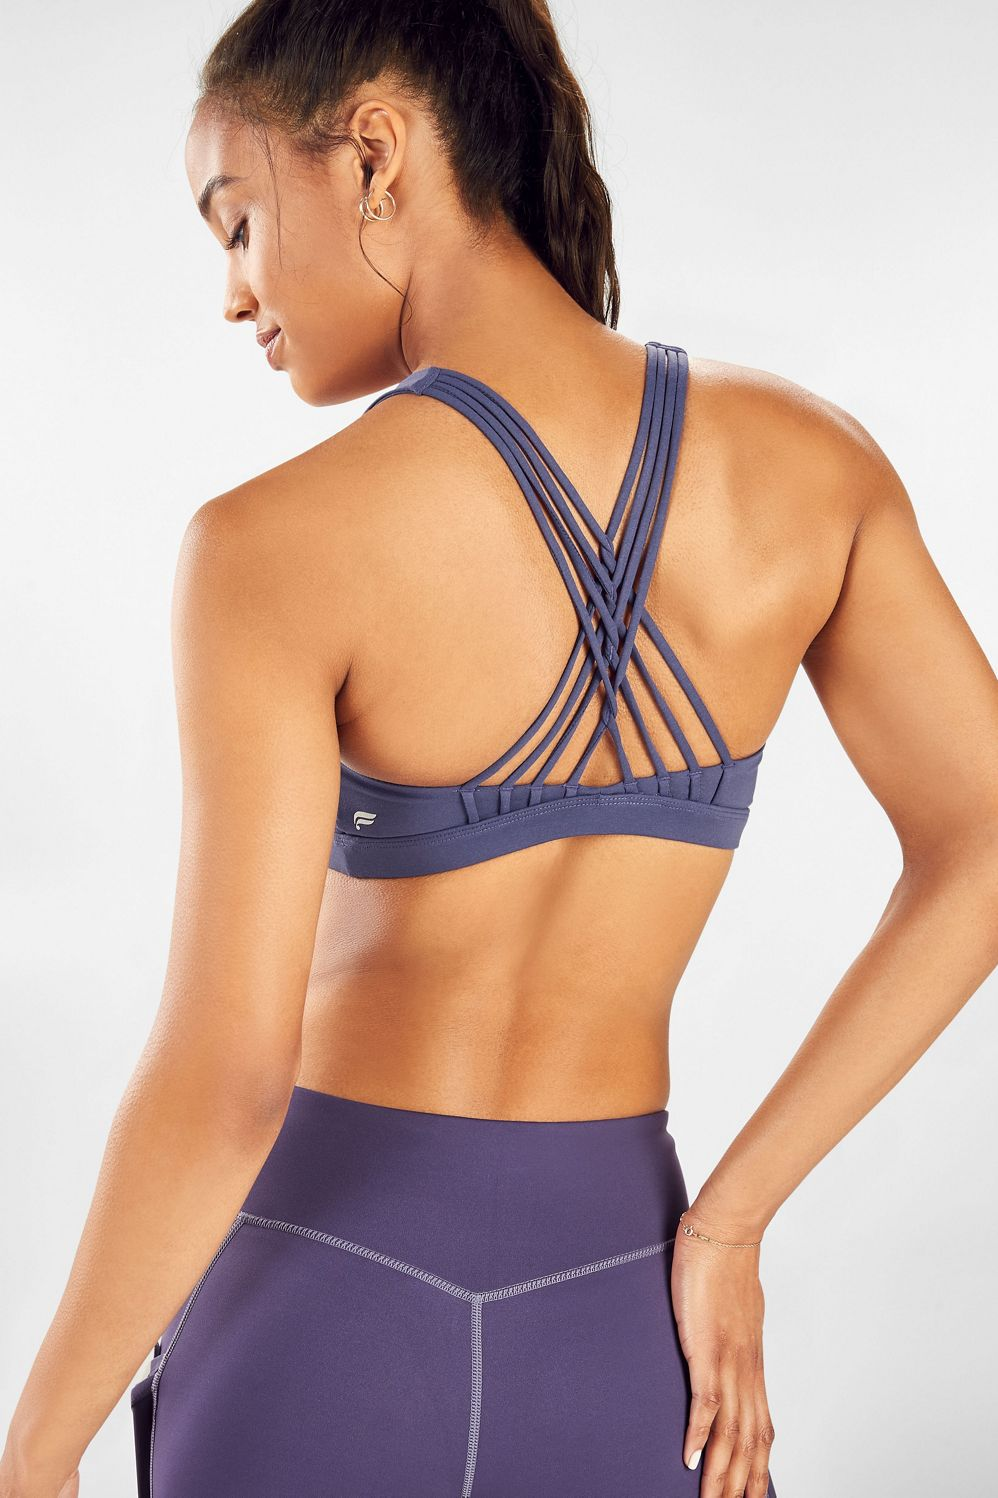 This medium-impact bra from our exclusive Dance Capsule features removable cups and all-way stretch fabric so you can move freely on the stage or in the studio.